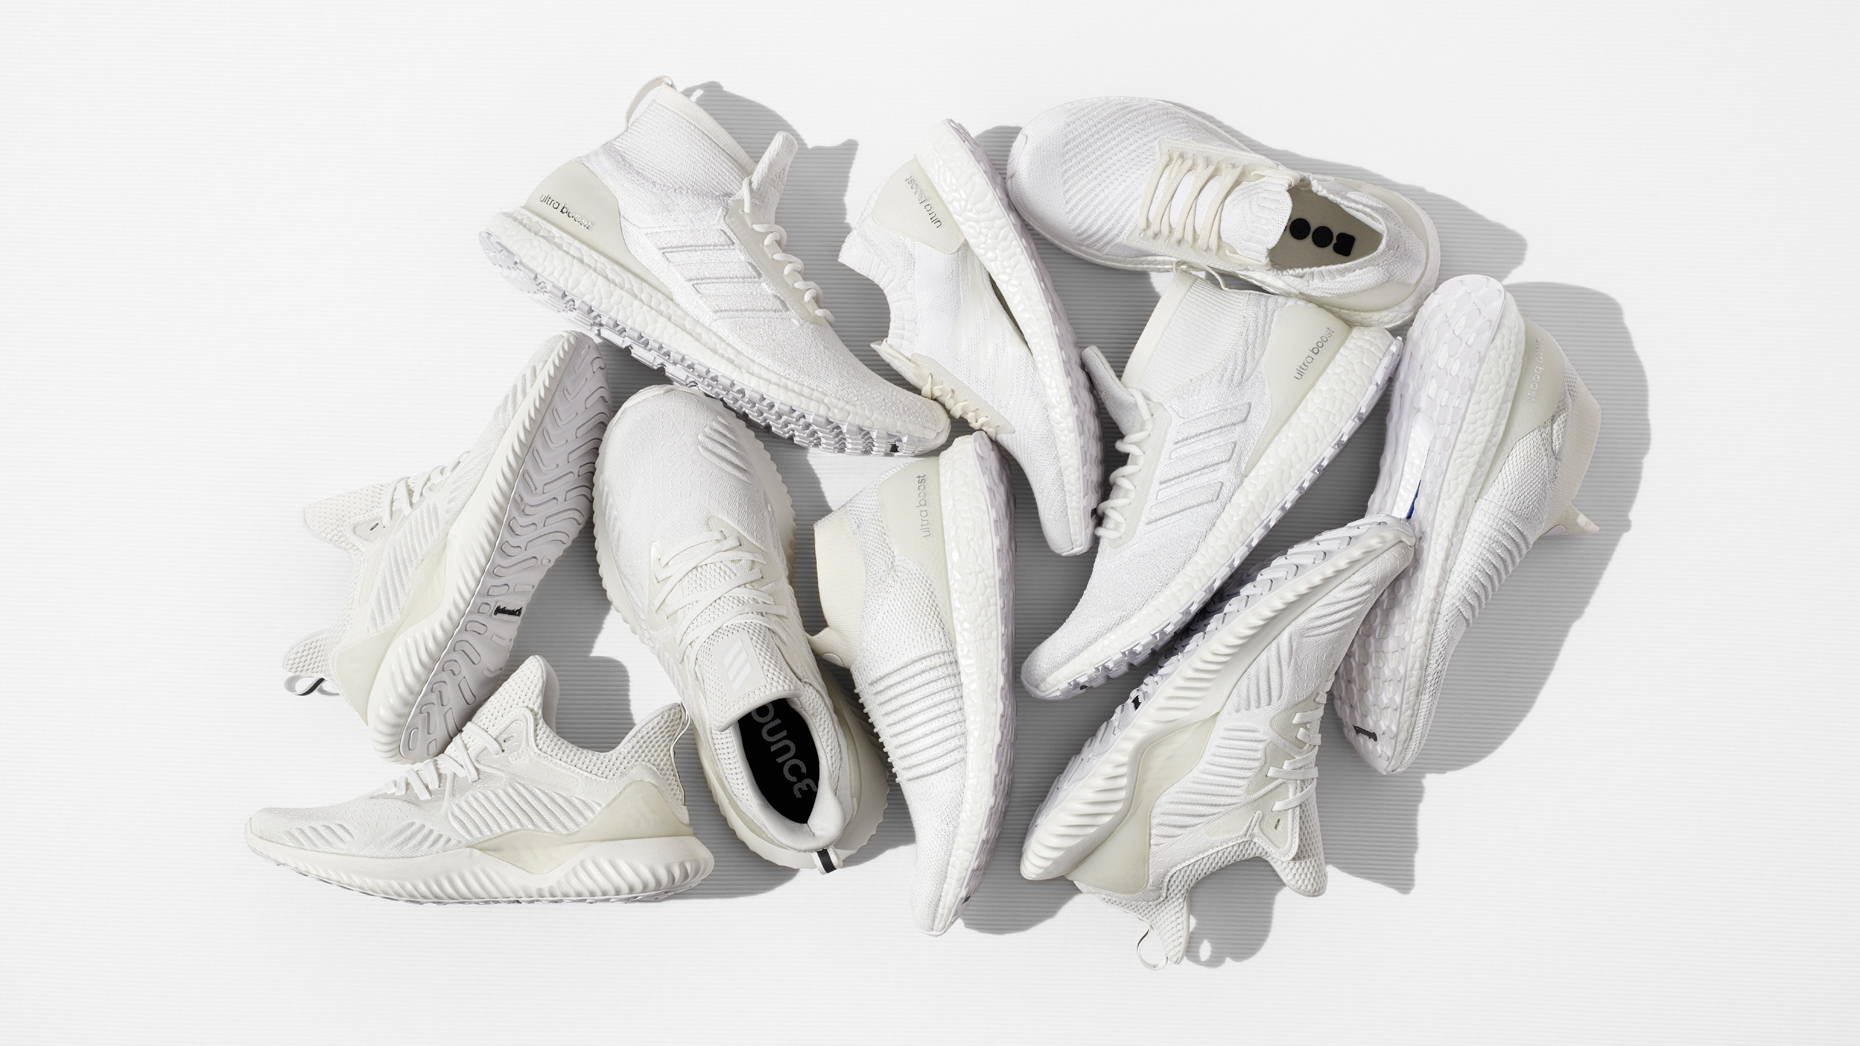 Adidas white Ultraboost shoe collection arranged on white surface overhead view